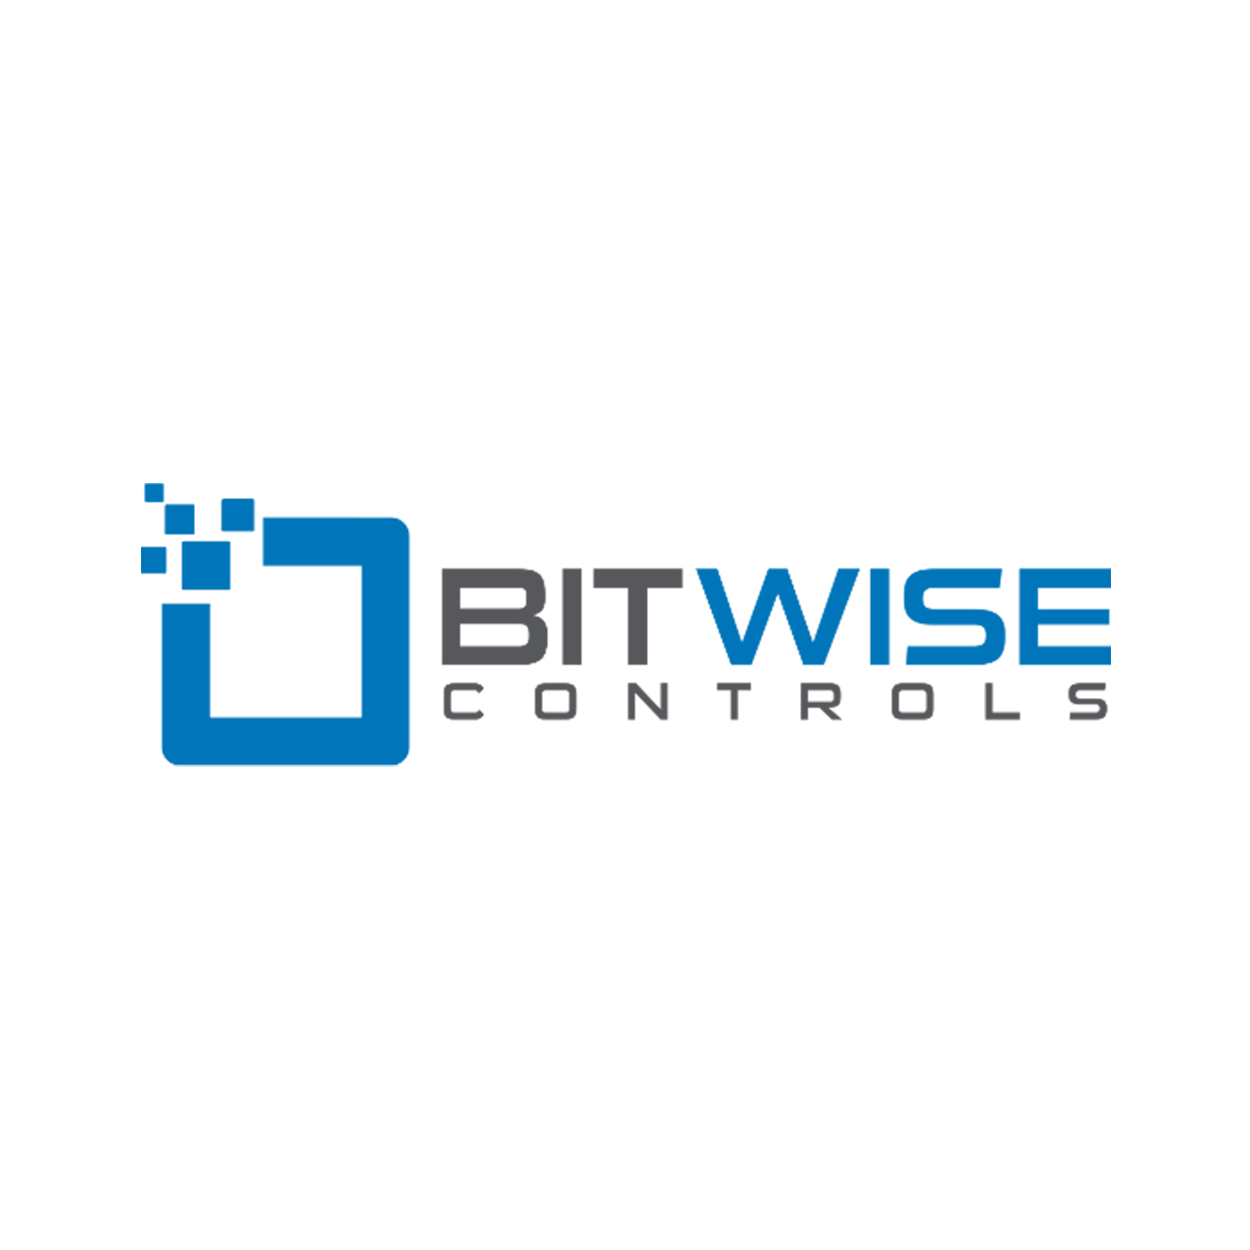 bitwise.png